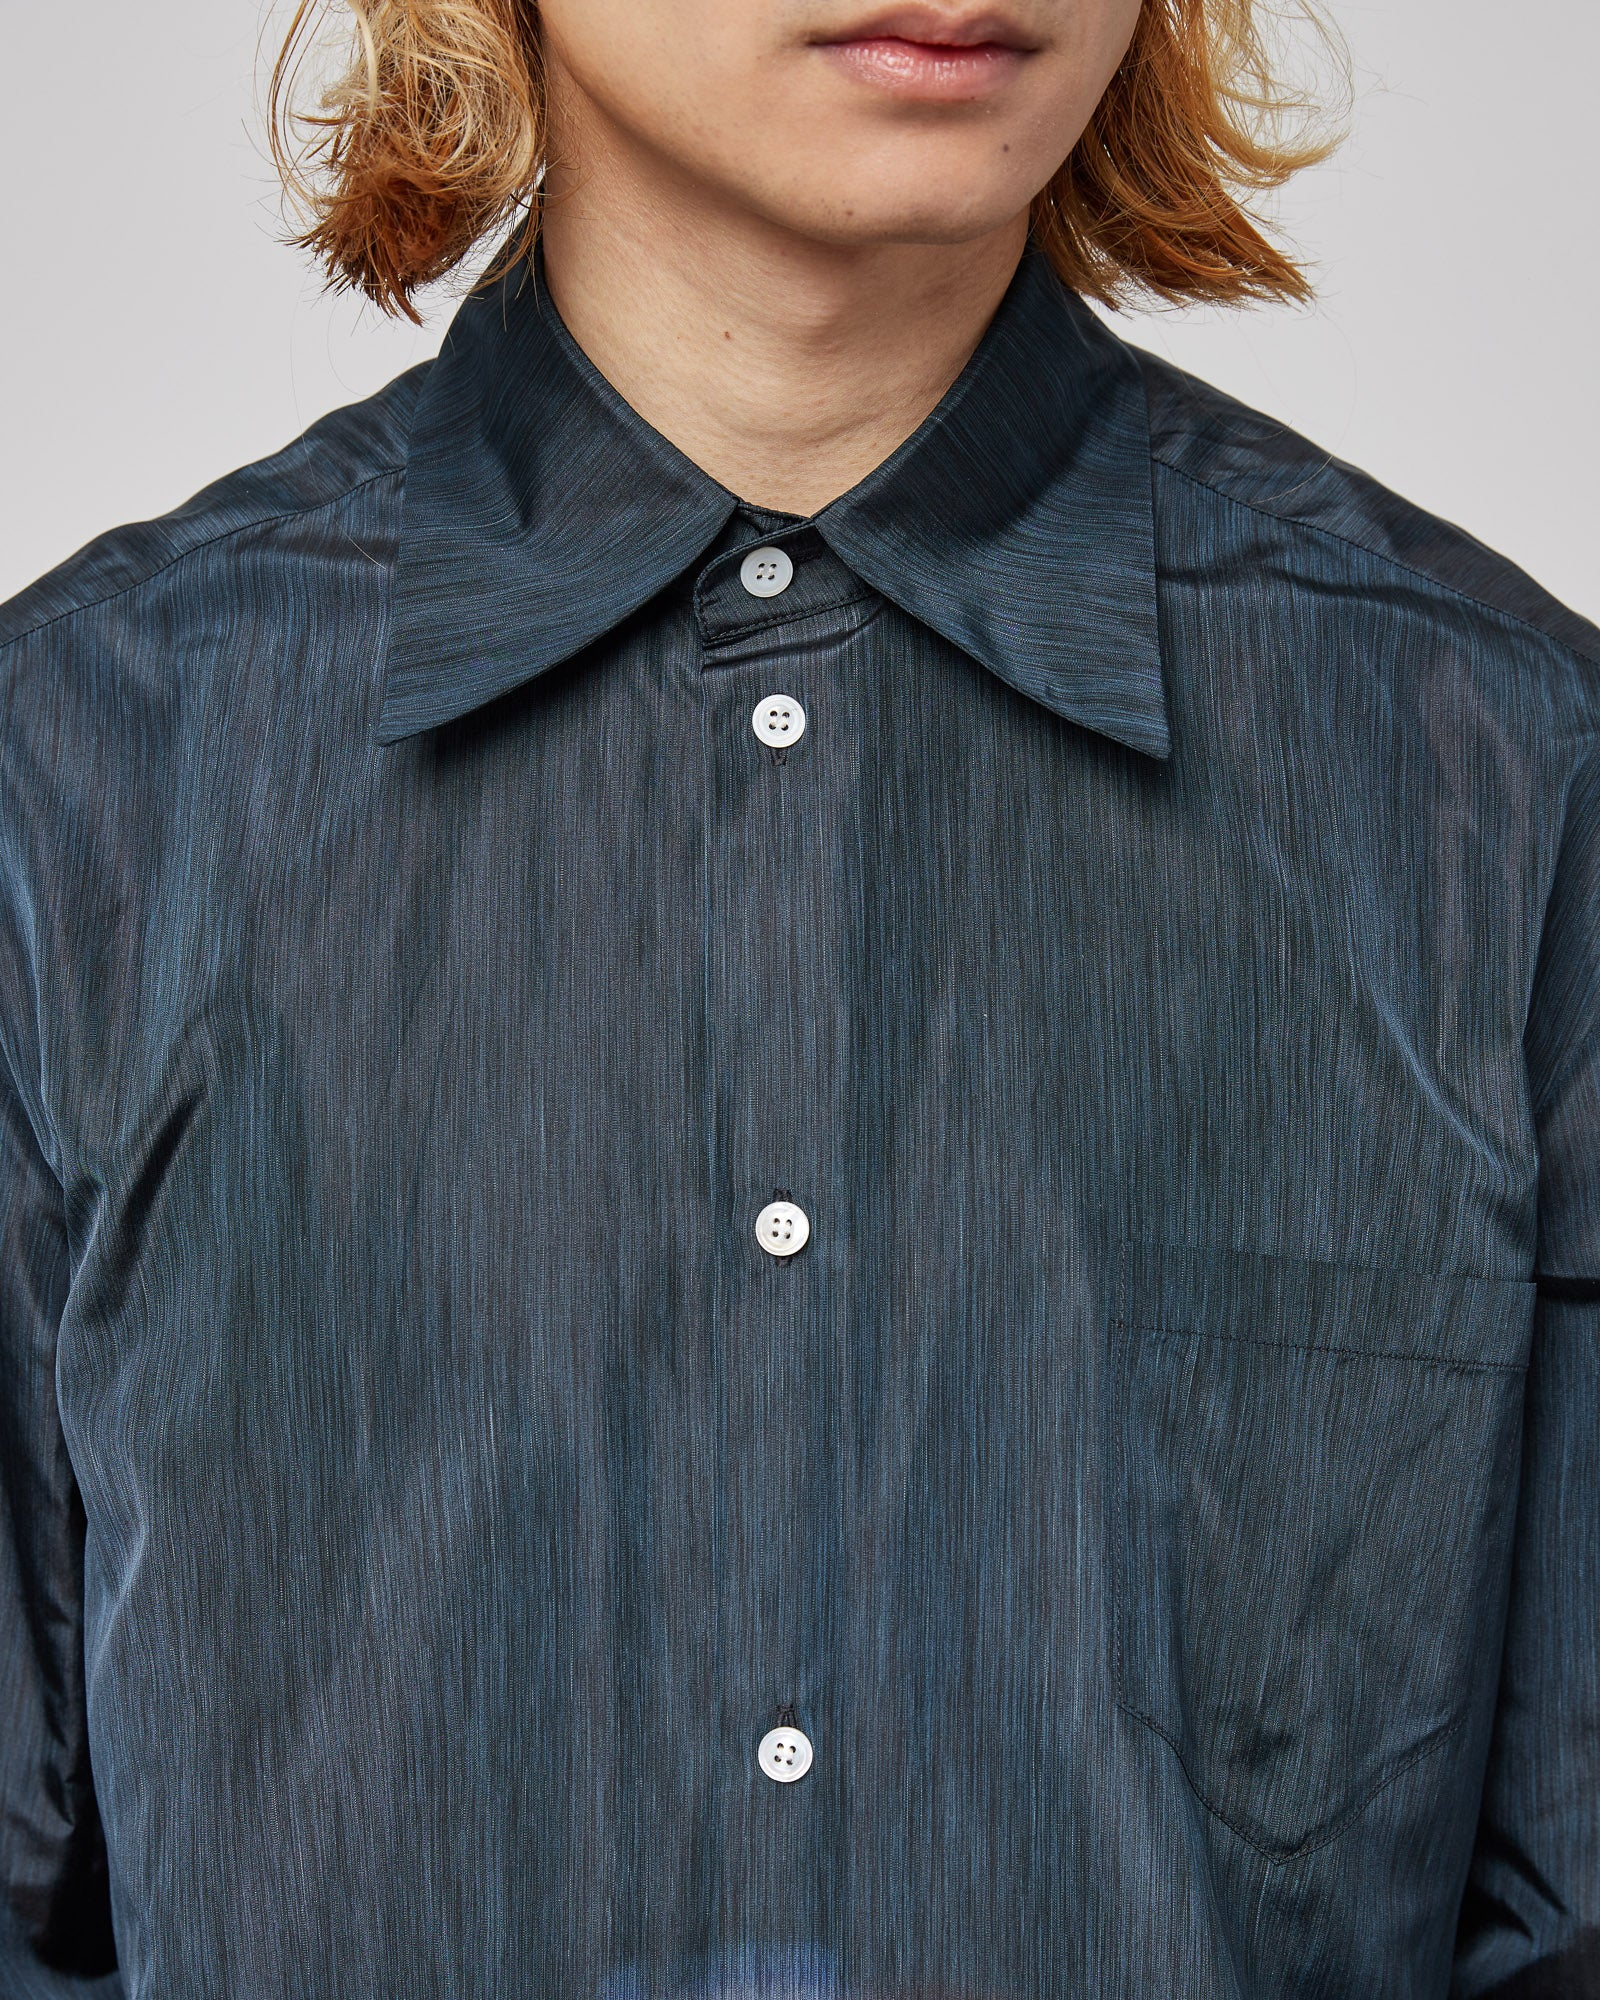 Lause Warp Print Classic Shirt in Black